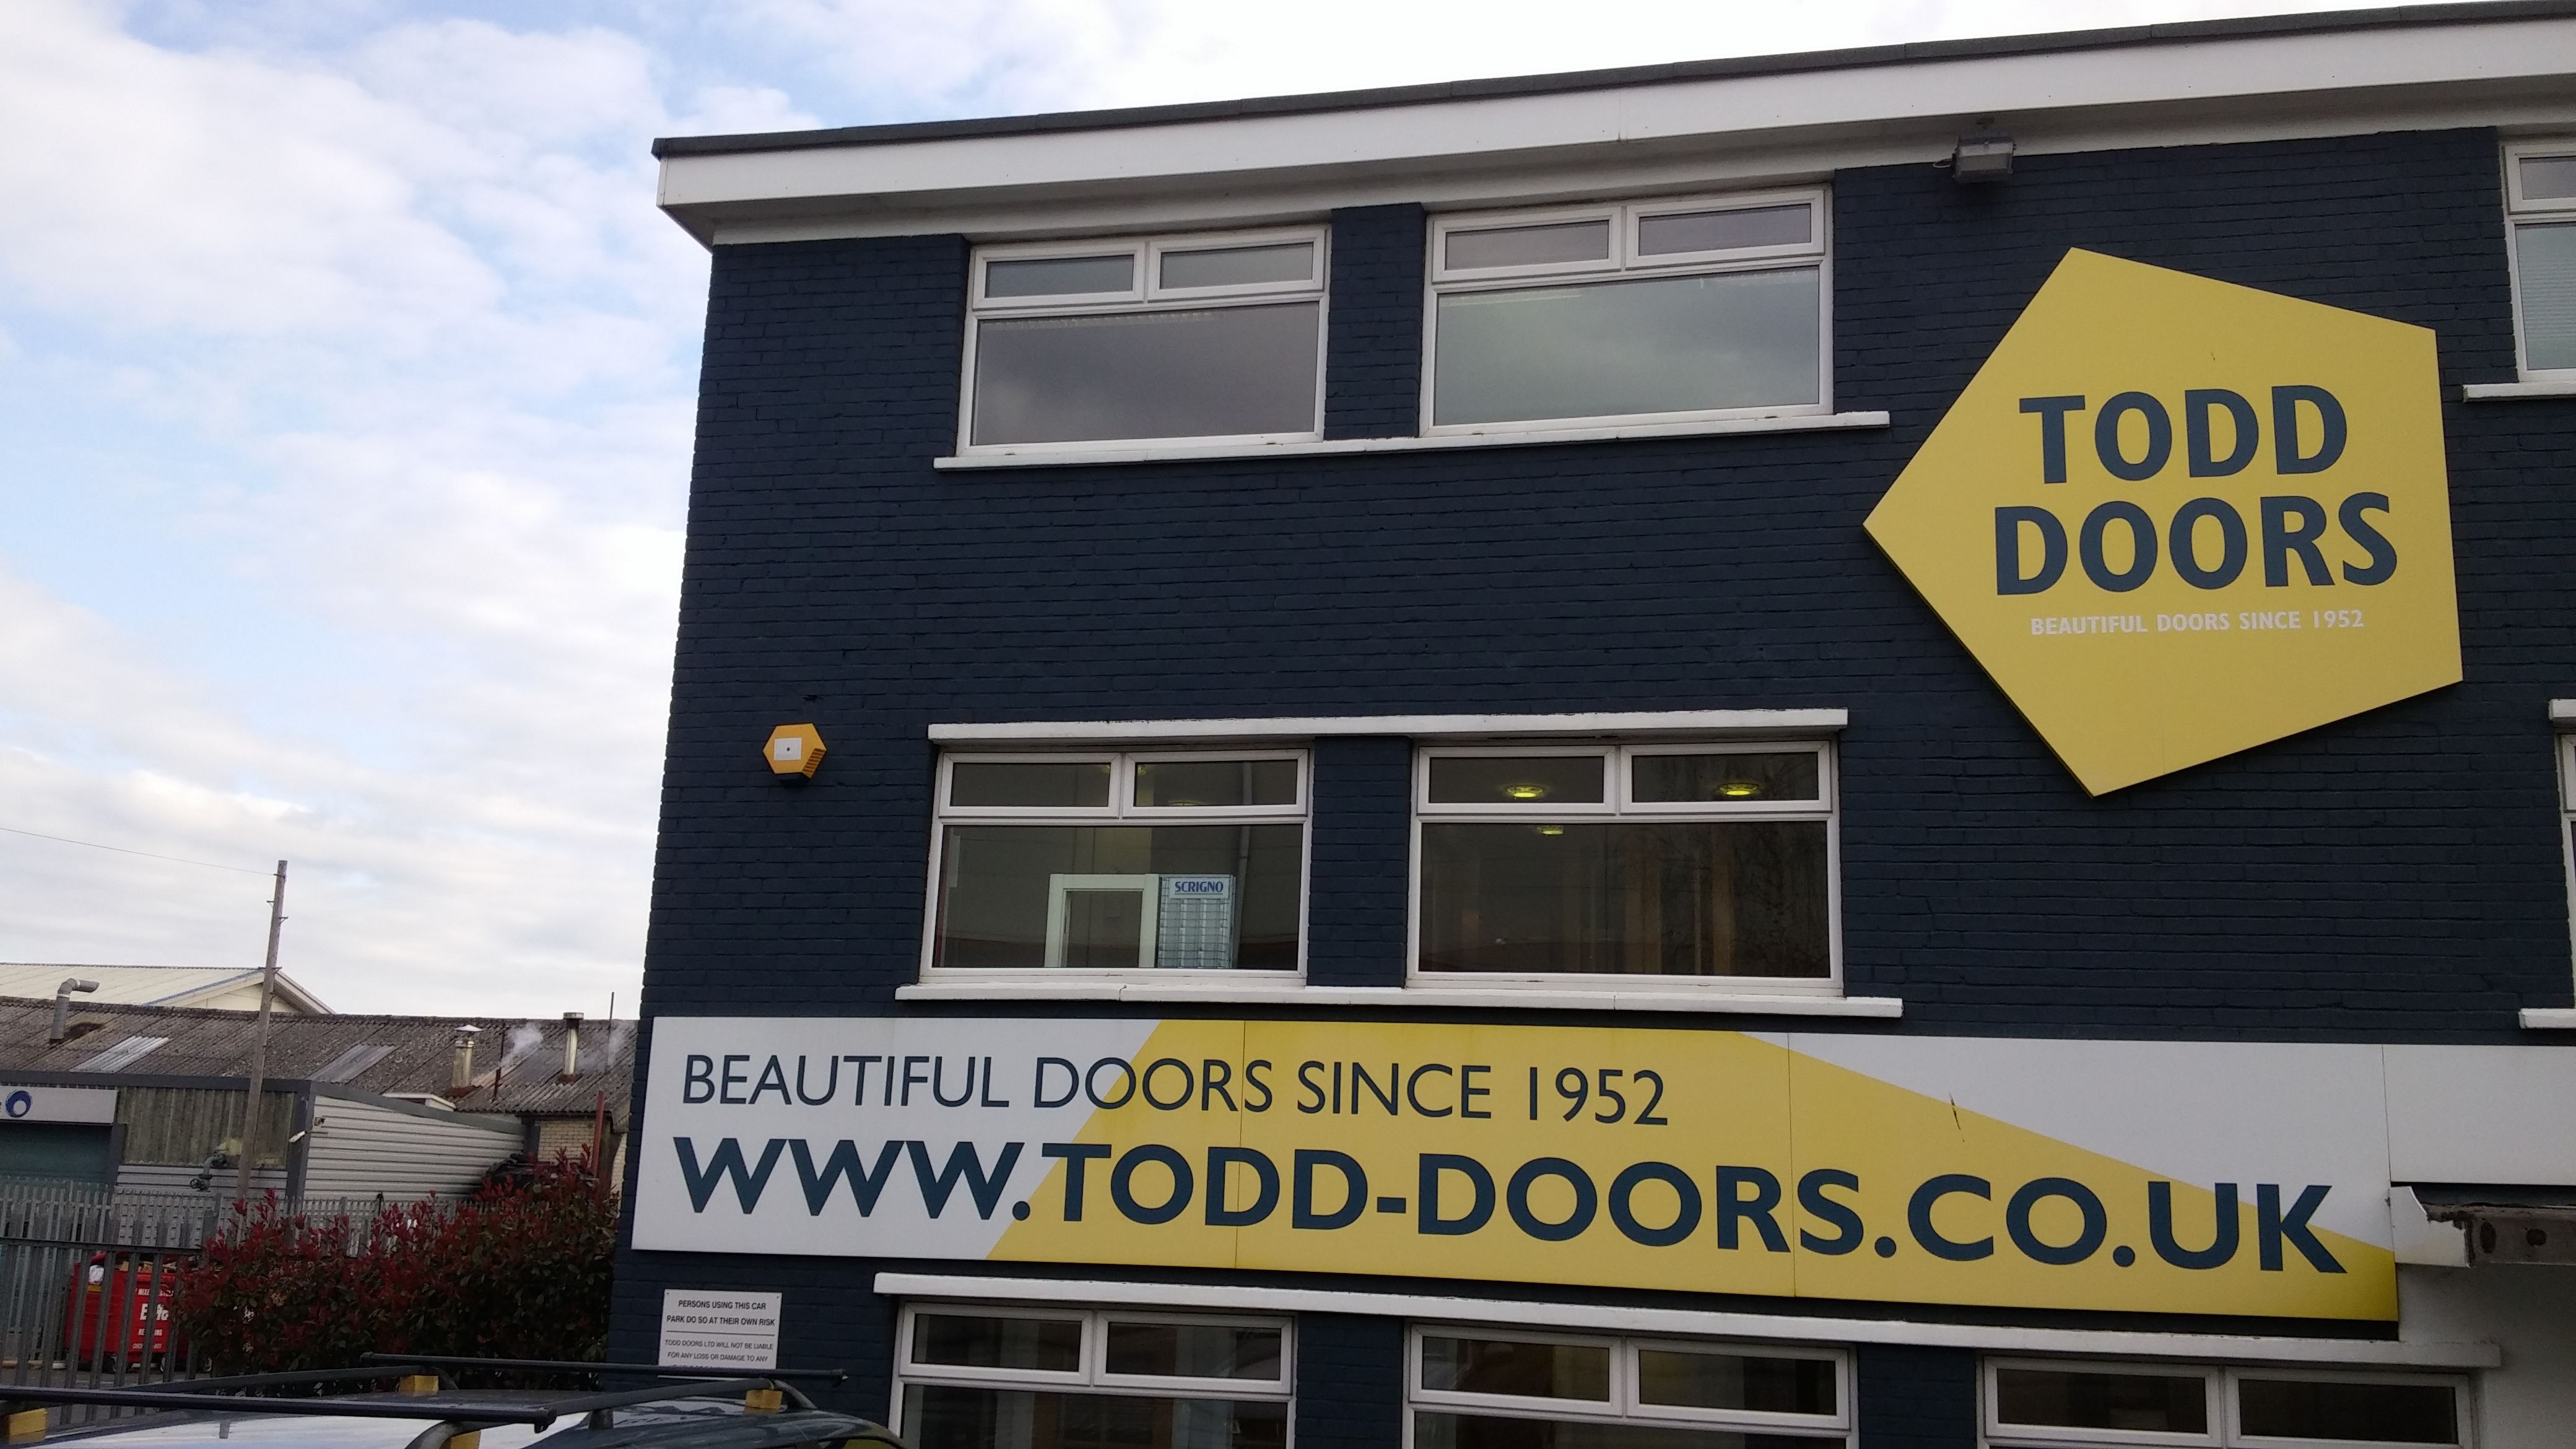 Todd Doors High Wycombe Showroom Showcases A Beautiful Range Of External And Internal Doors. Visit Us To See Touch And Experience The Quality Of O\\u2026 & Todds Doors \u0026 681 Todds Ridge Road - Photo 12